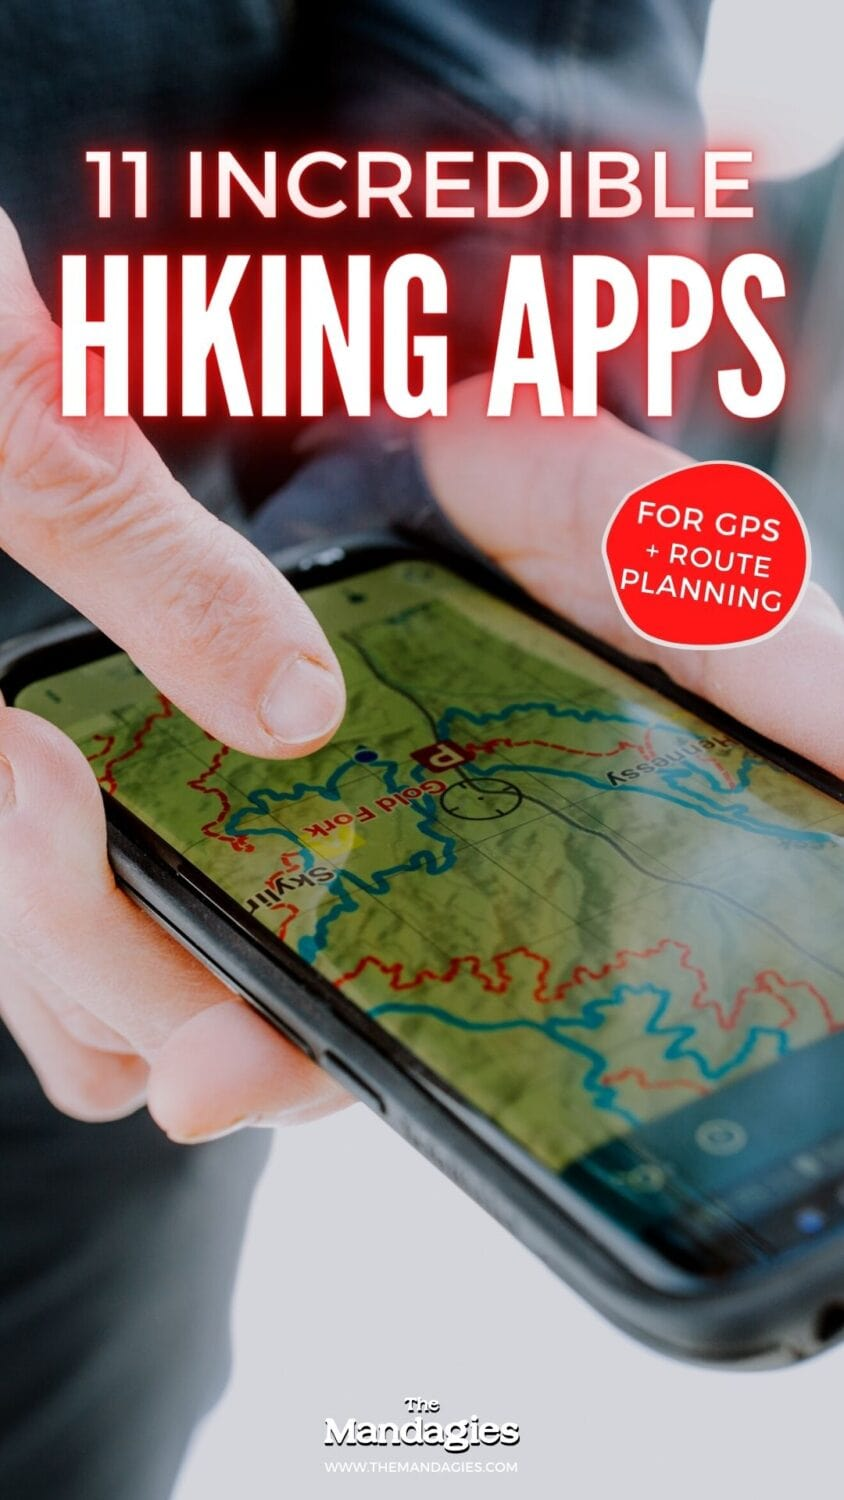 Do you love knowing everything about your next hiking trail? We're sharing the best hiking apps to download, with features like offline topography maps, mountain identification, GPS tracking, and so much more! Read this blog post to pick your next favorite app for hiking! #hiking #hikes #PNW #PacificNorthwest #skiing #snowboarding #backcountry #backpacking #GPS #mountains #travel #USAtravel #usa #navigation #tripplanning #nationalparks